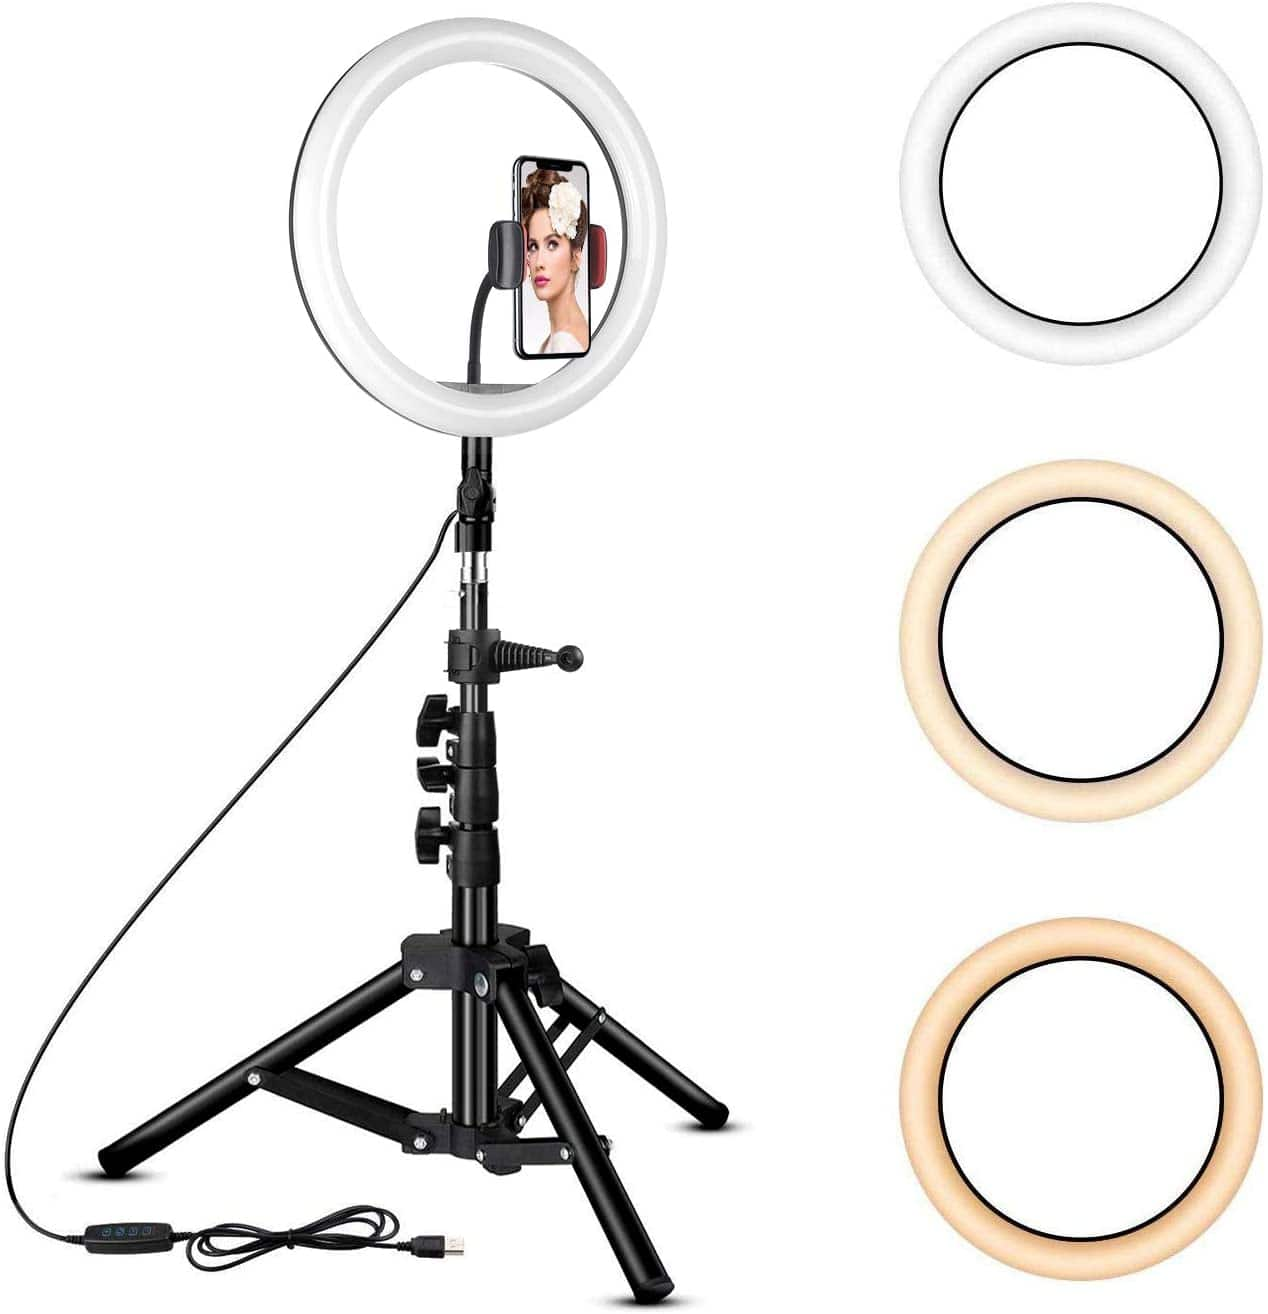 Amazon: Rovtop 10 inch Ring Light with Stand Tripod, LED Circle Lights with Phone Holder $16.99